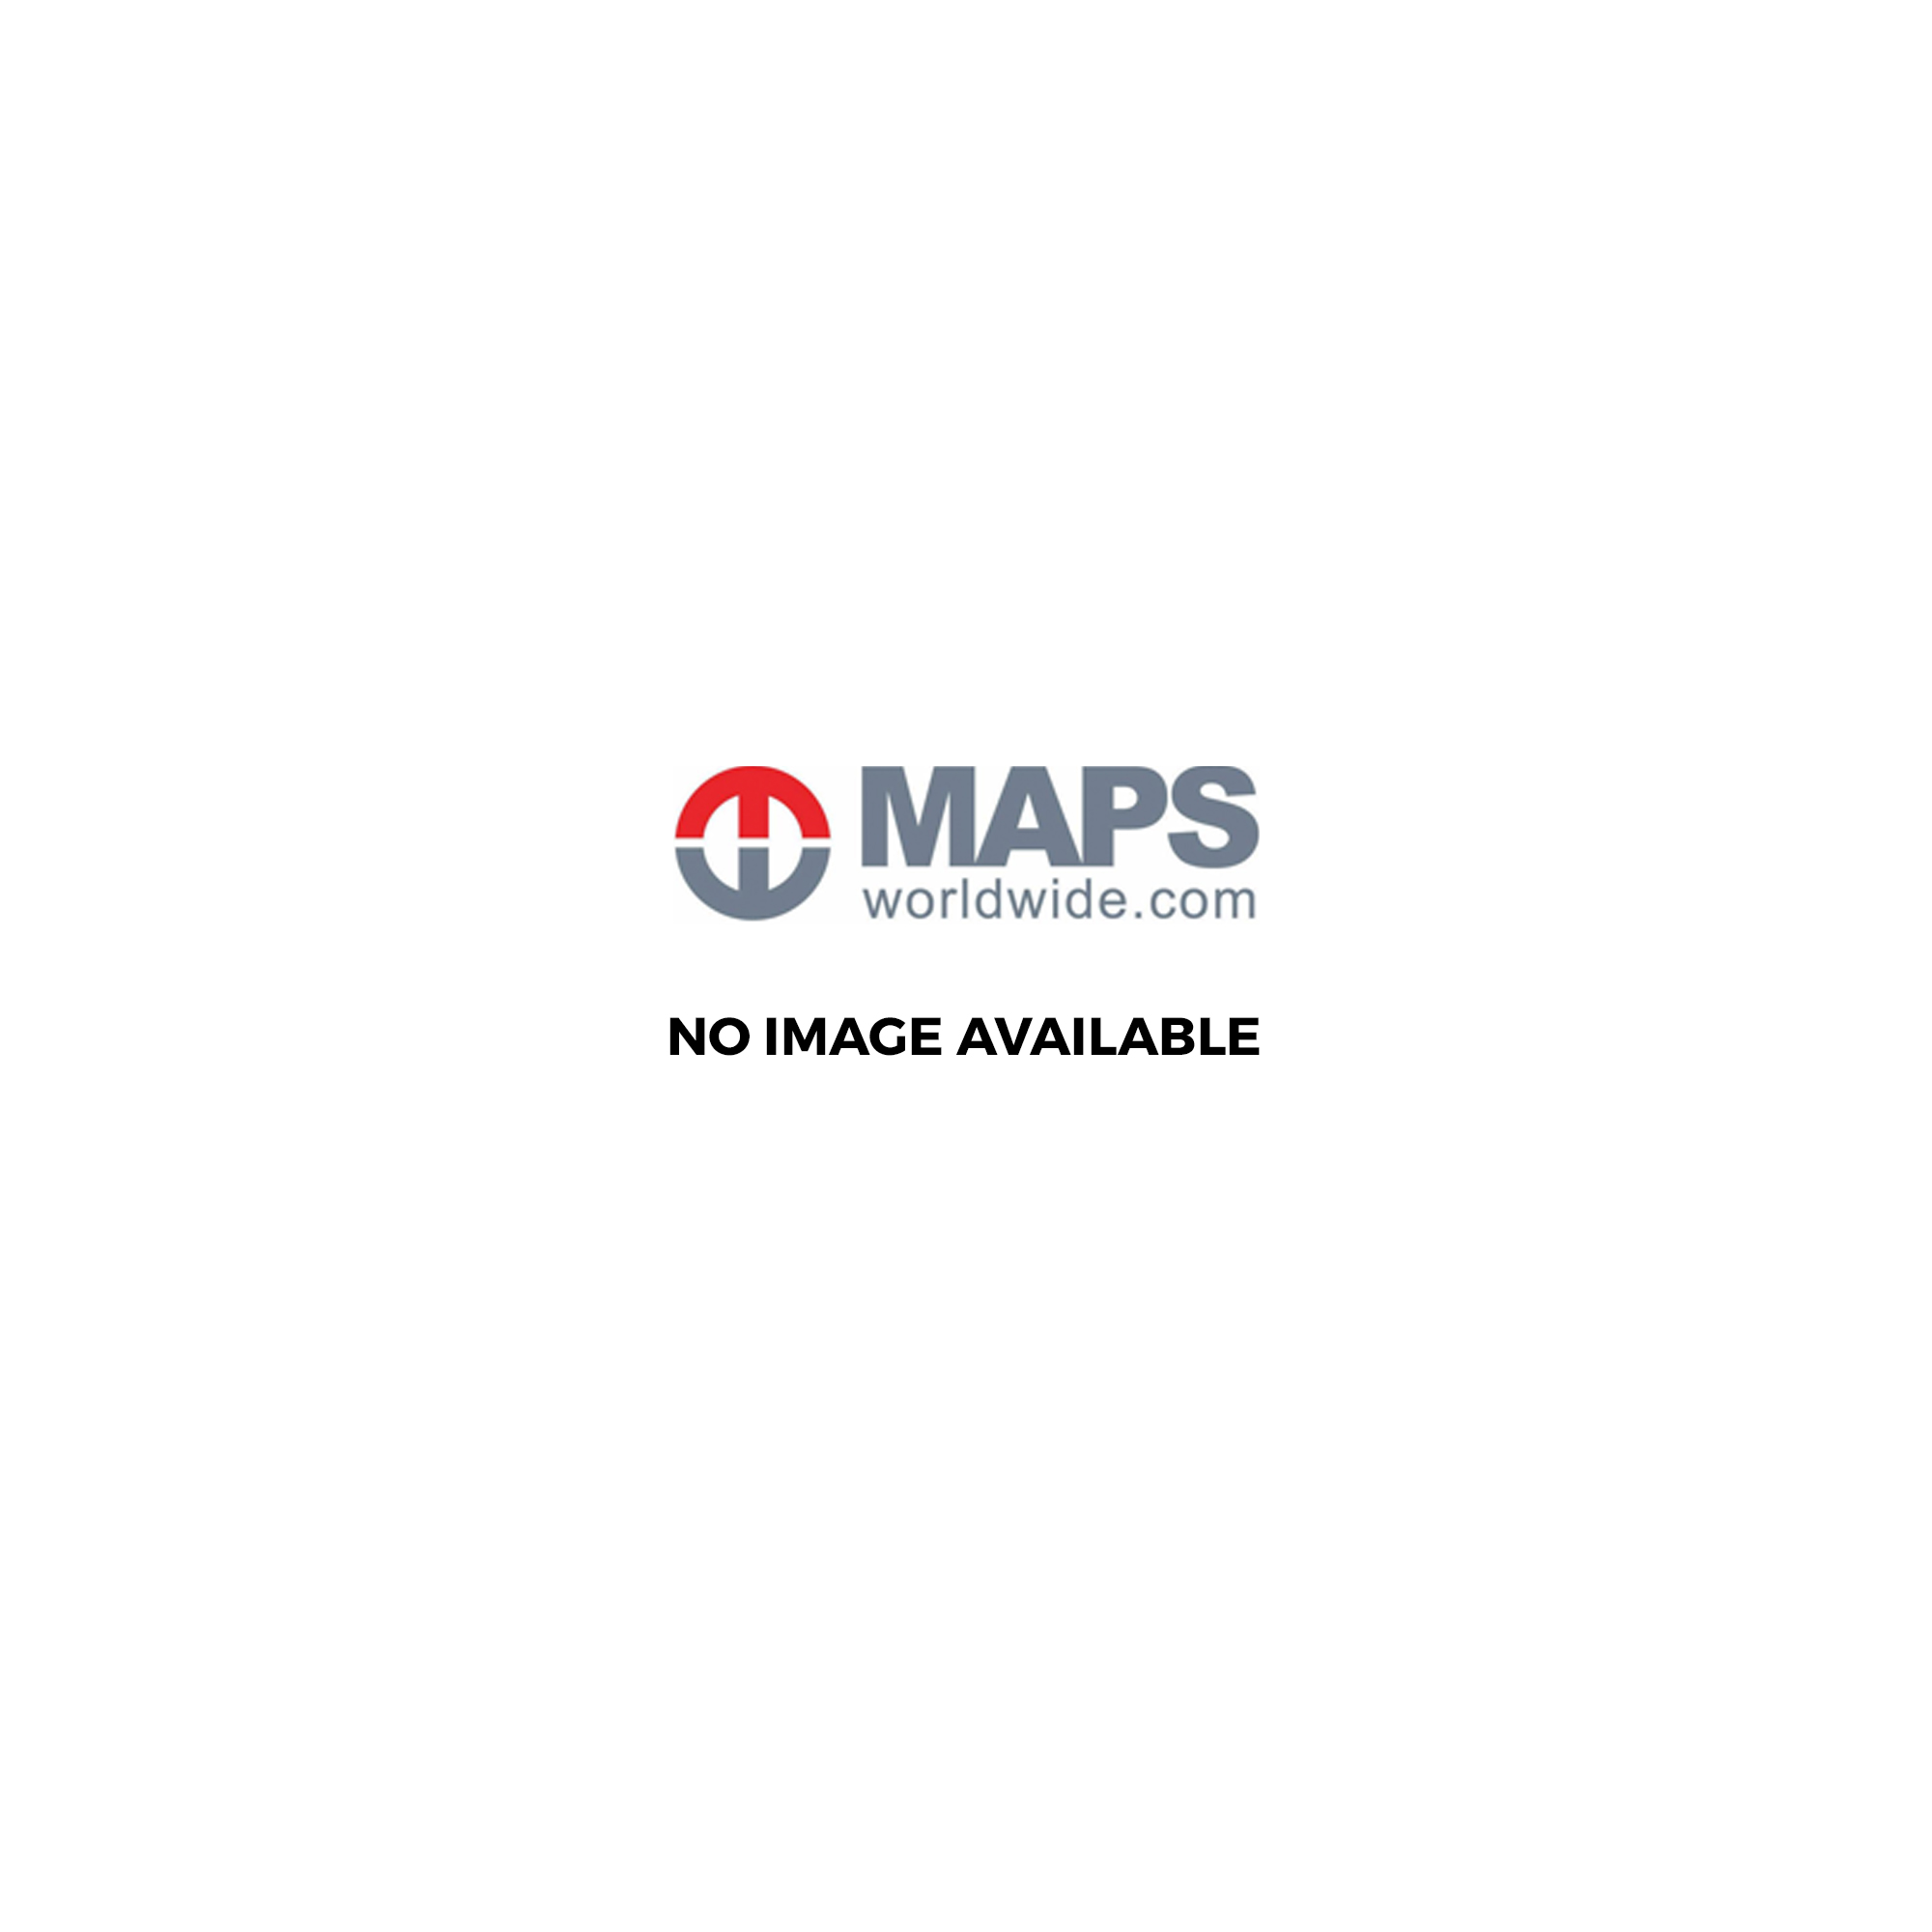 Michelin US Zoom Map 174: California Nevada